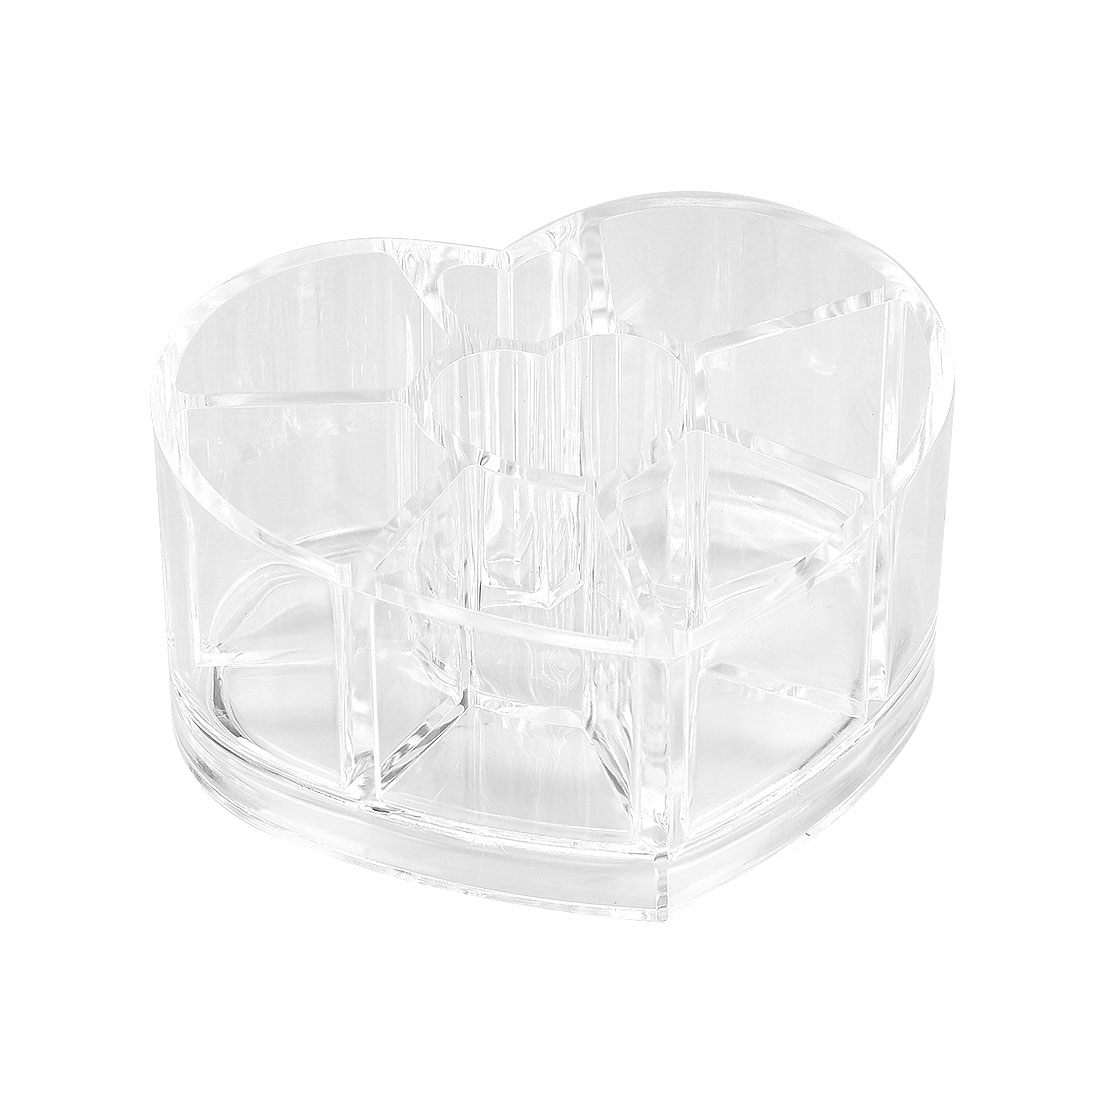 Clear Acrylic Makeup Organiser Storage Cosmetic Brush Holder with Compartment